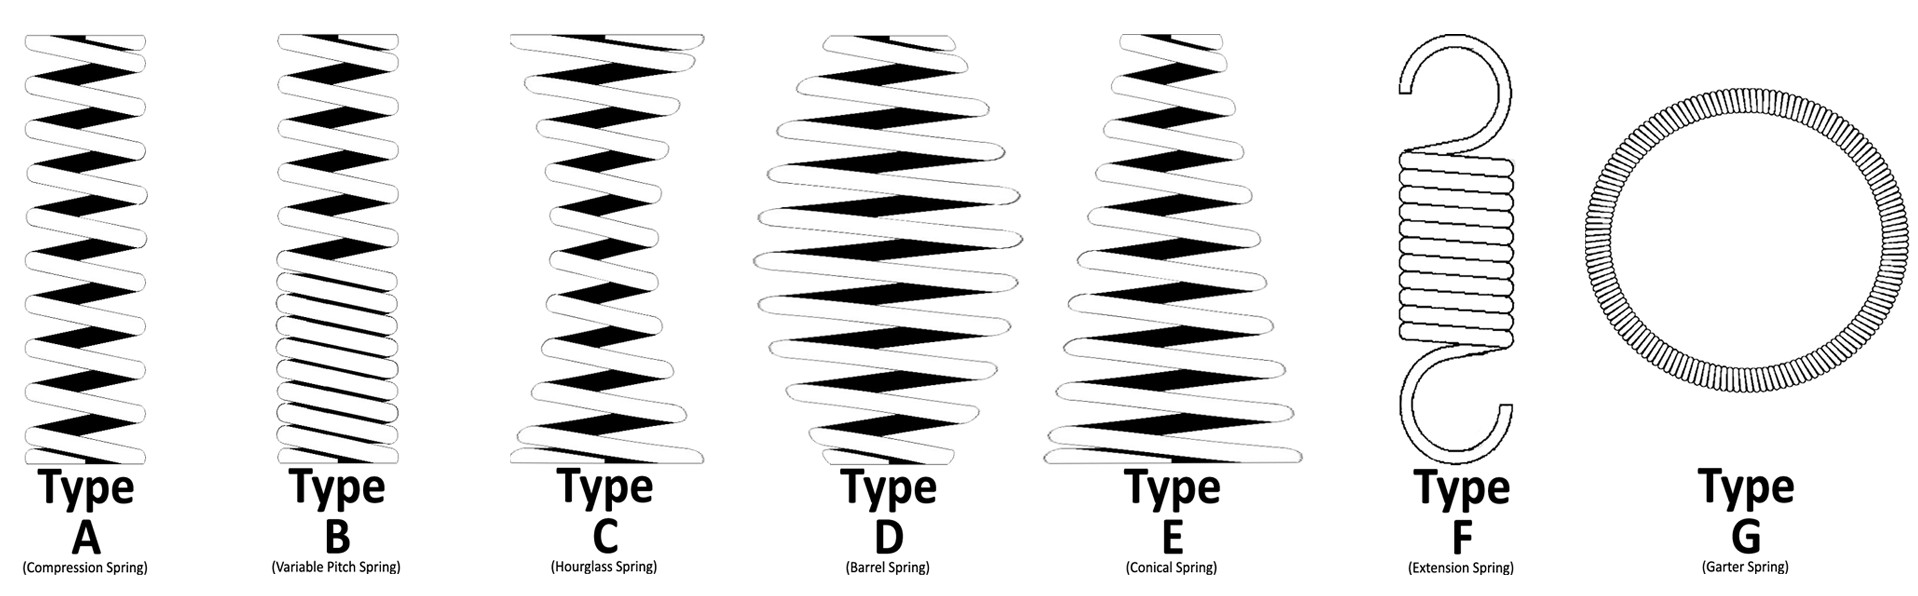 Different Types and Shapes of Our Springs | KB Delta